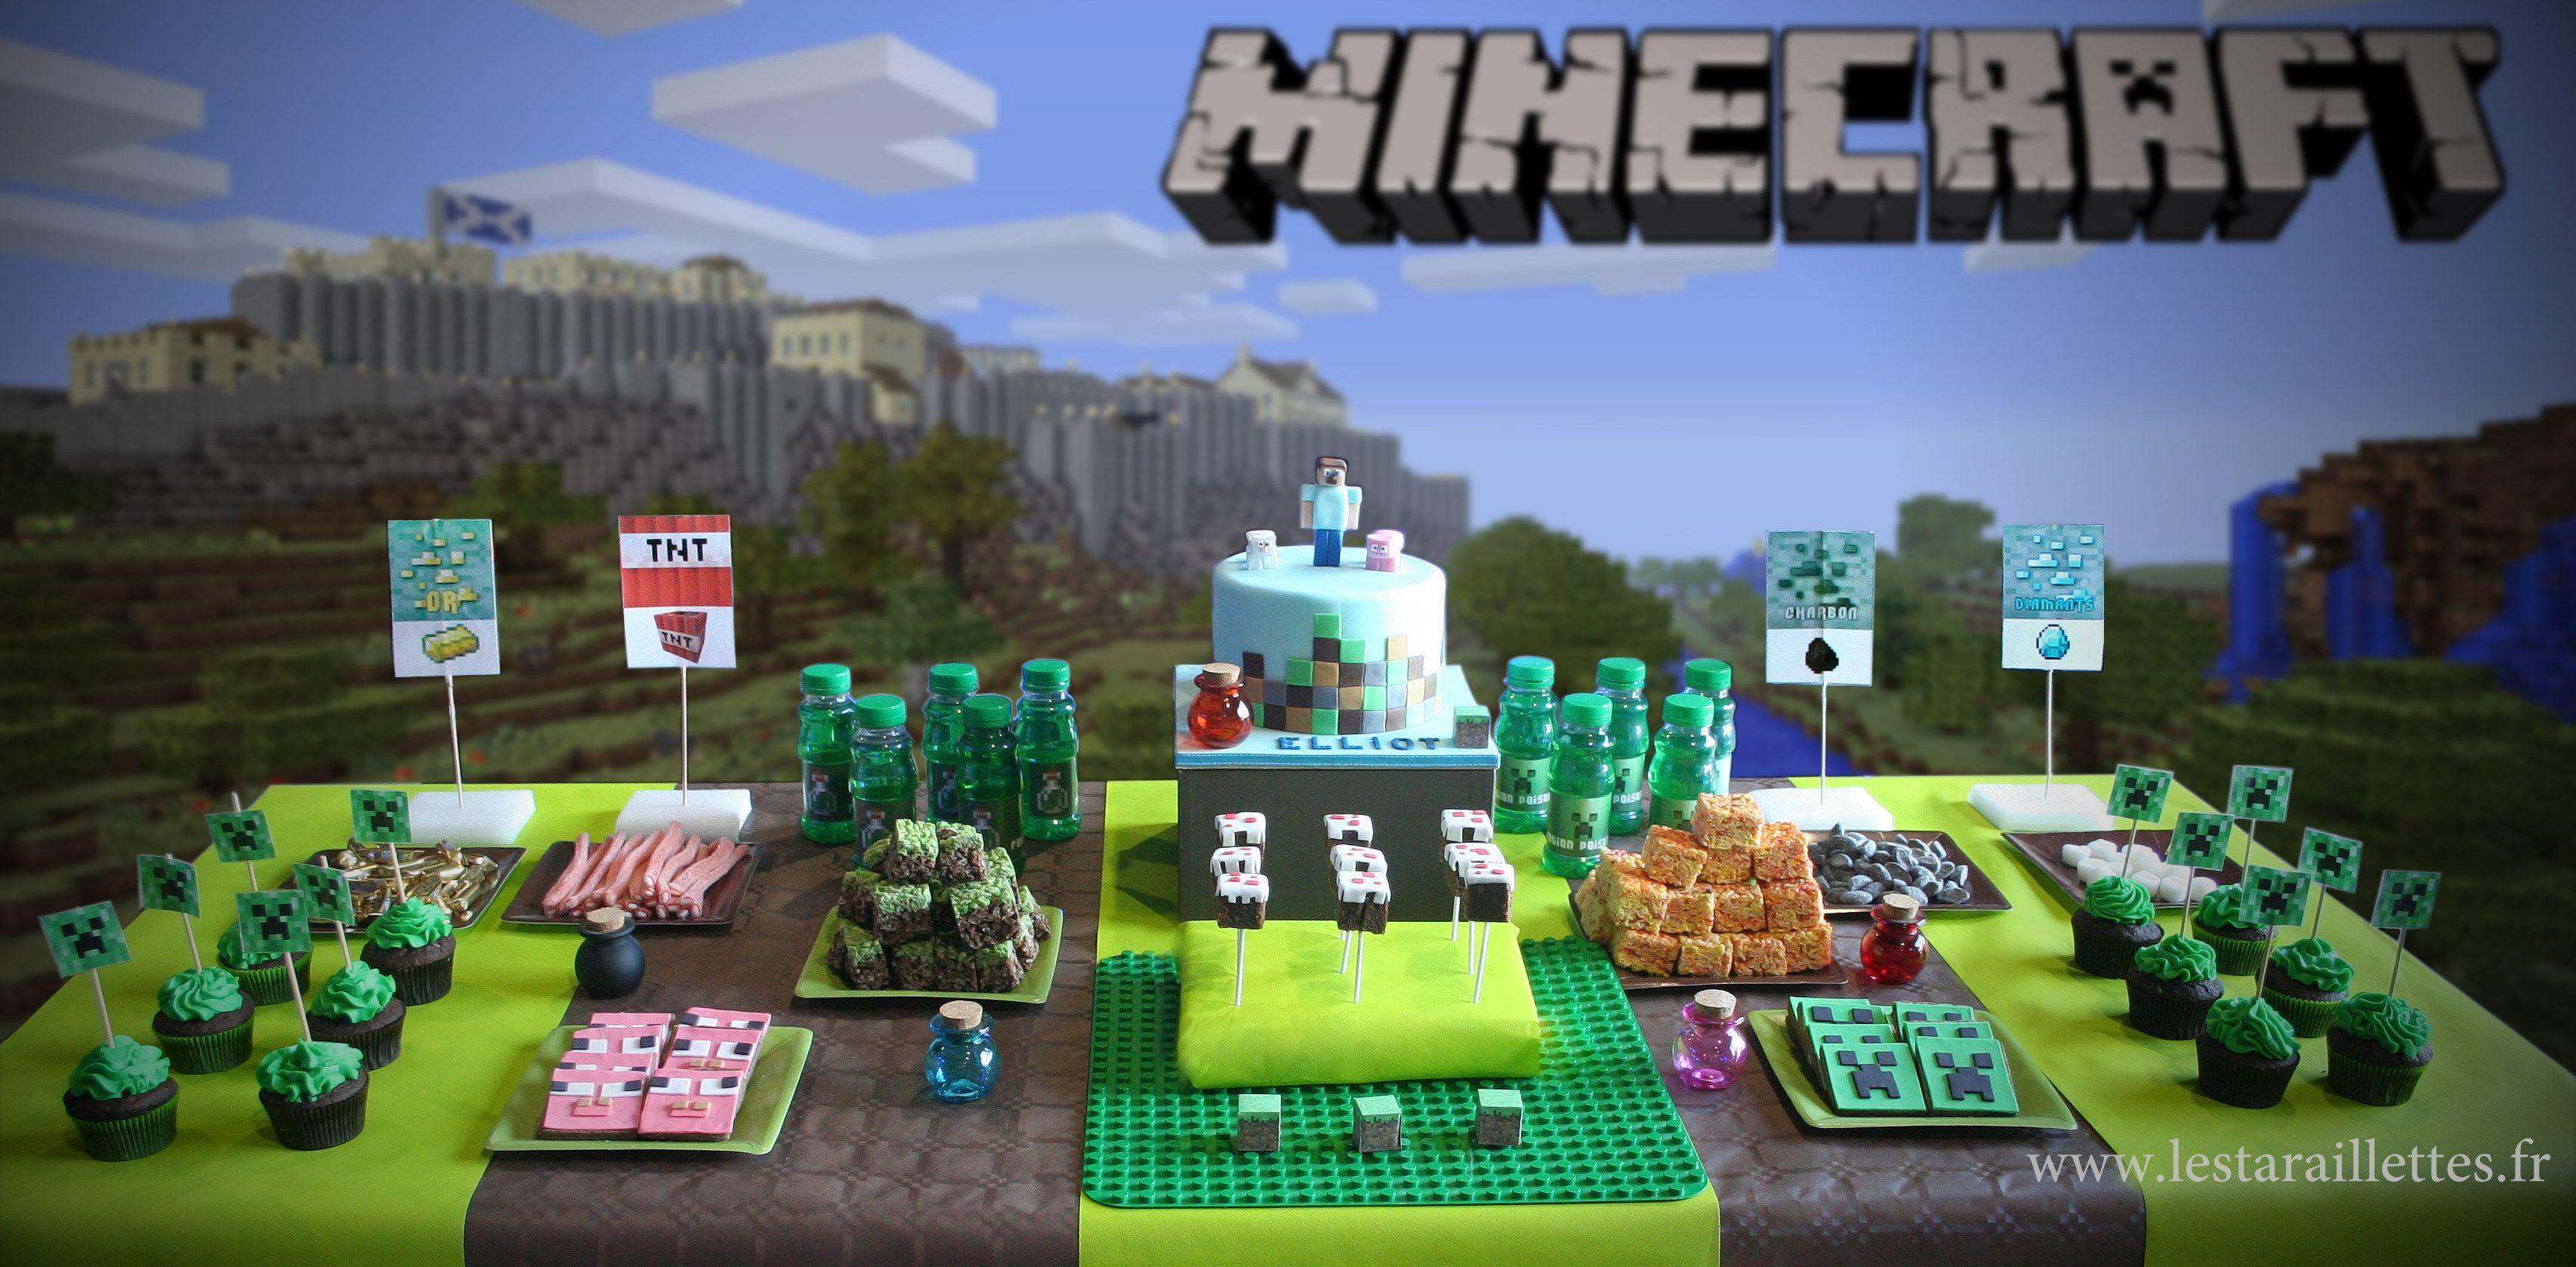 sweet table minecraft gateau d 39 anniversaire minecraft pinterest gateau minecraft. Black Bedroom Furniture Sets. Home Design Ideas